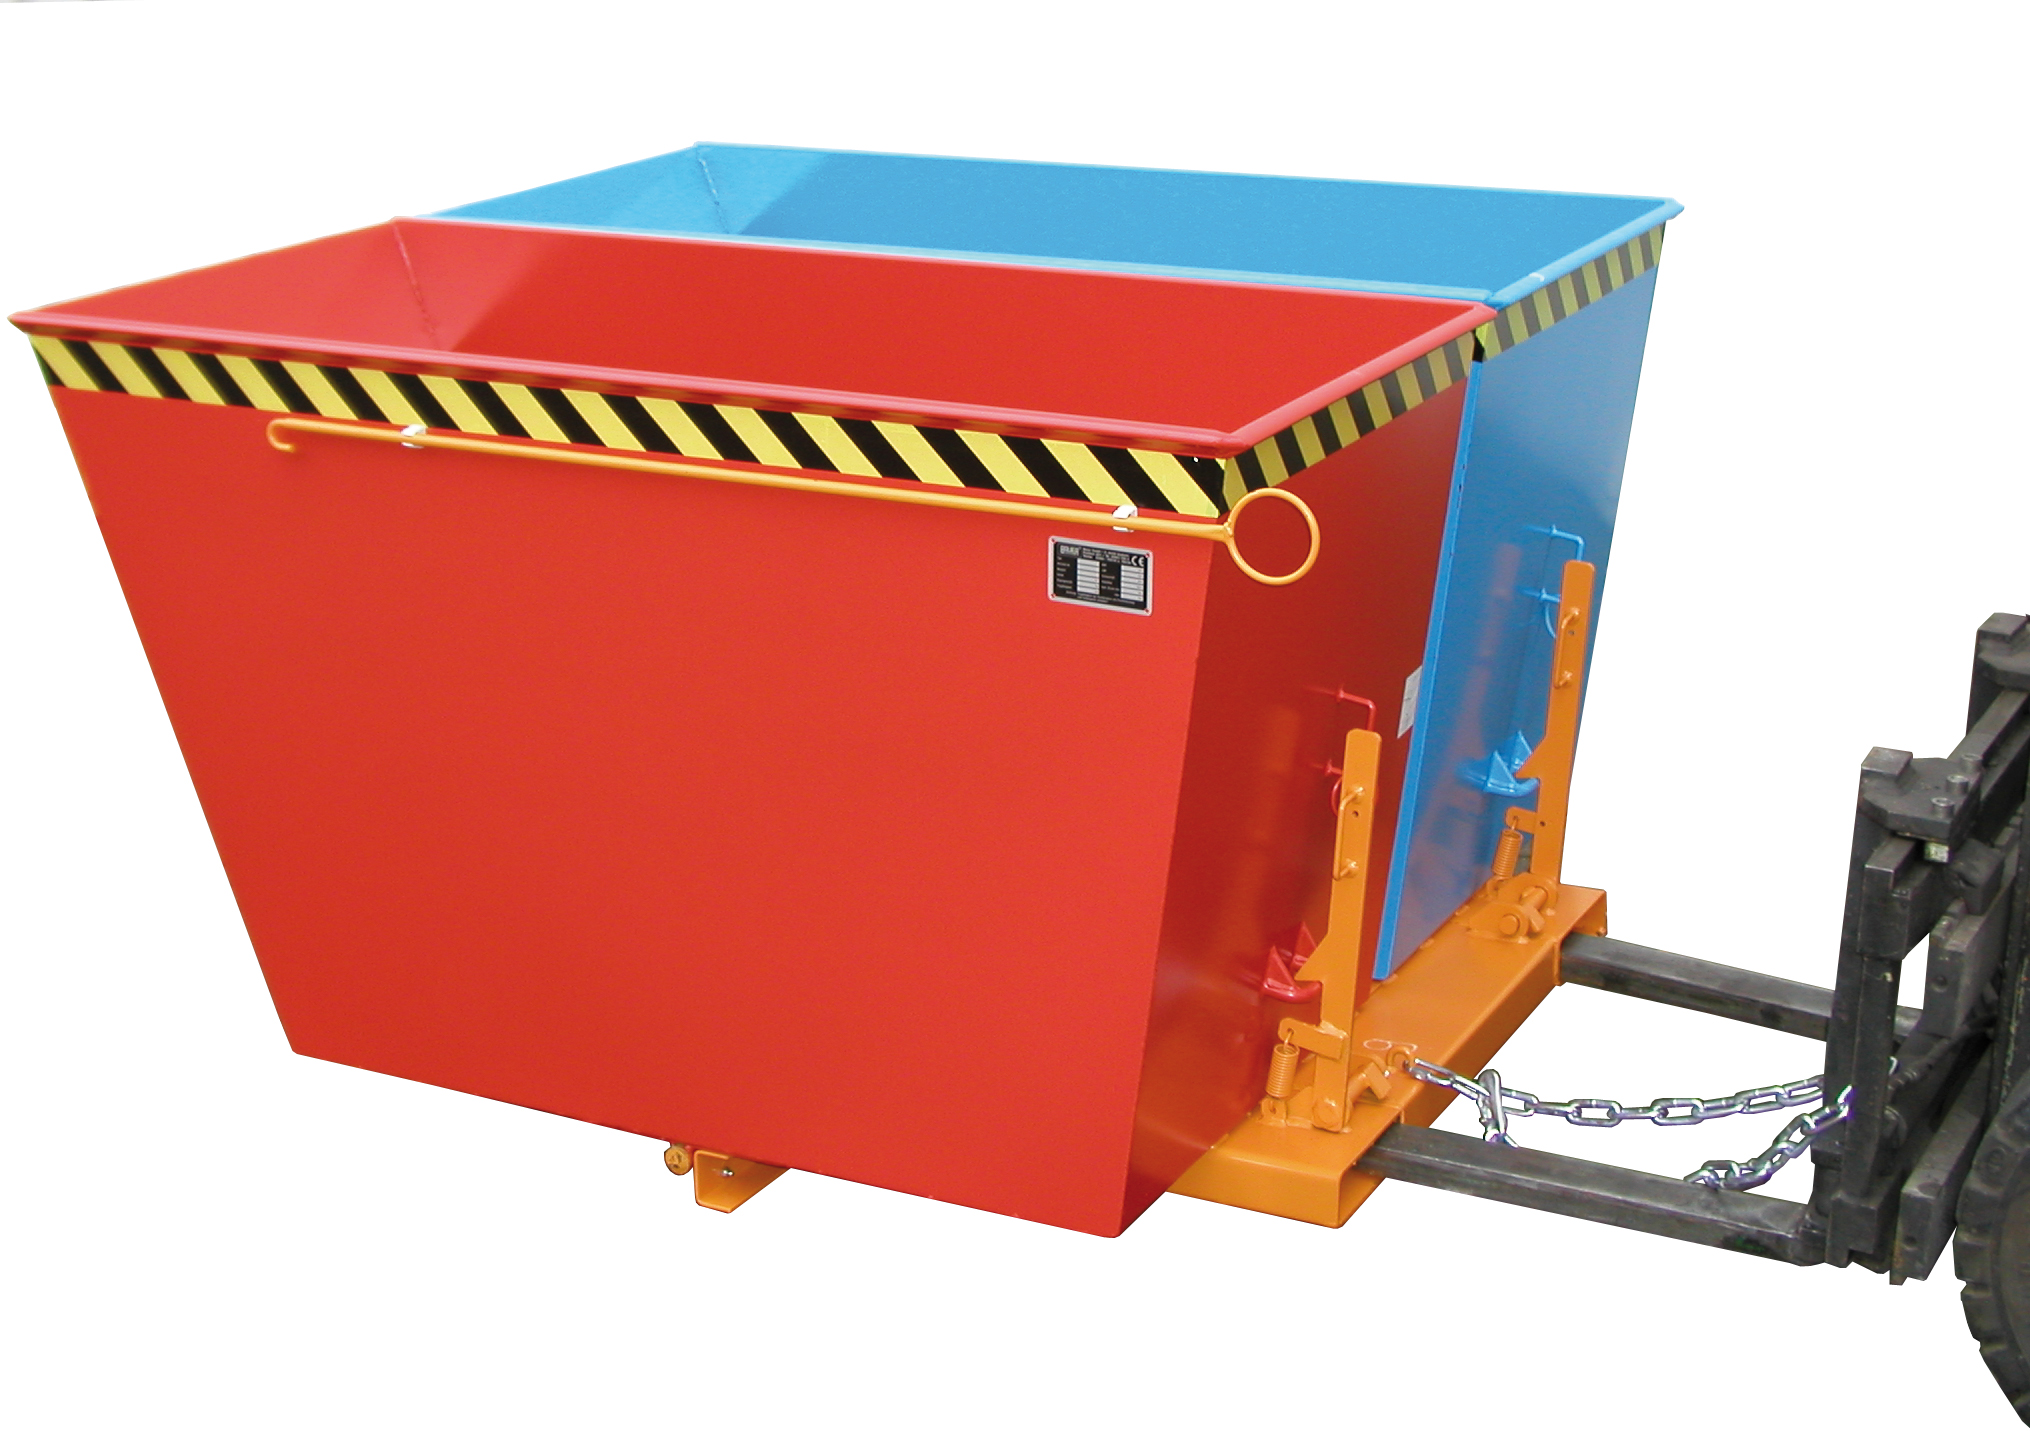 Bauer Südlohn® Duo tilting container, individually forward and tiltable